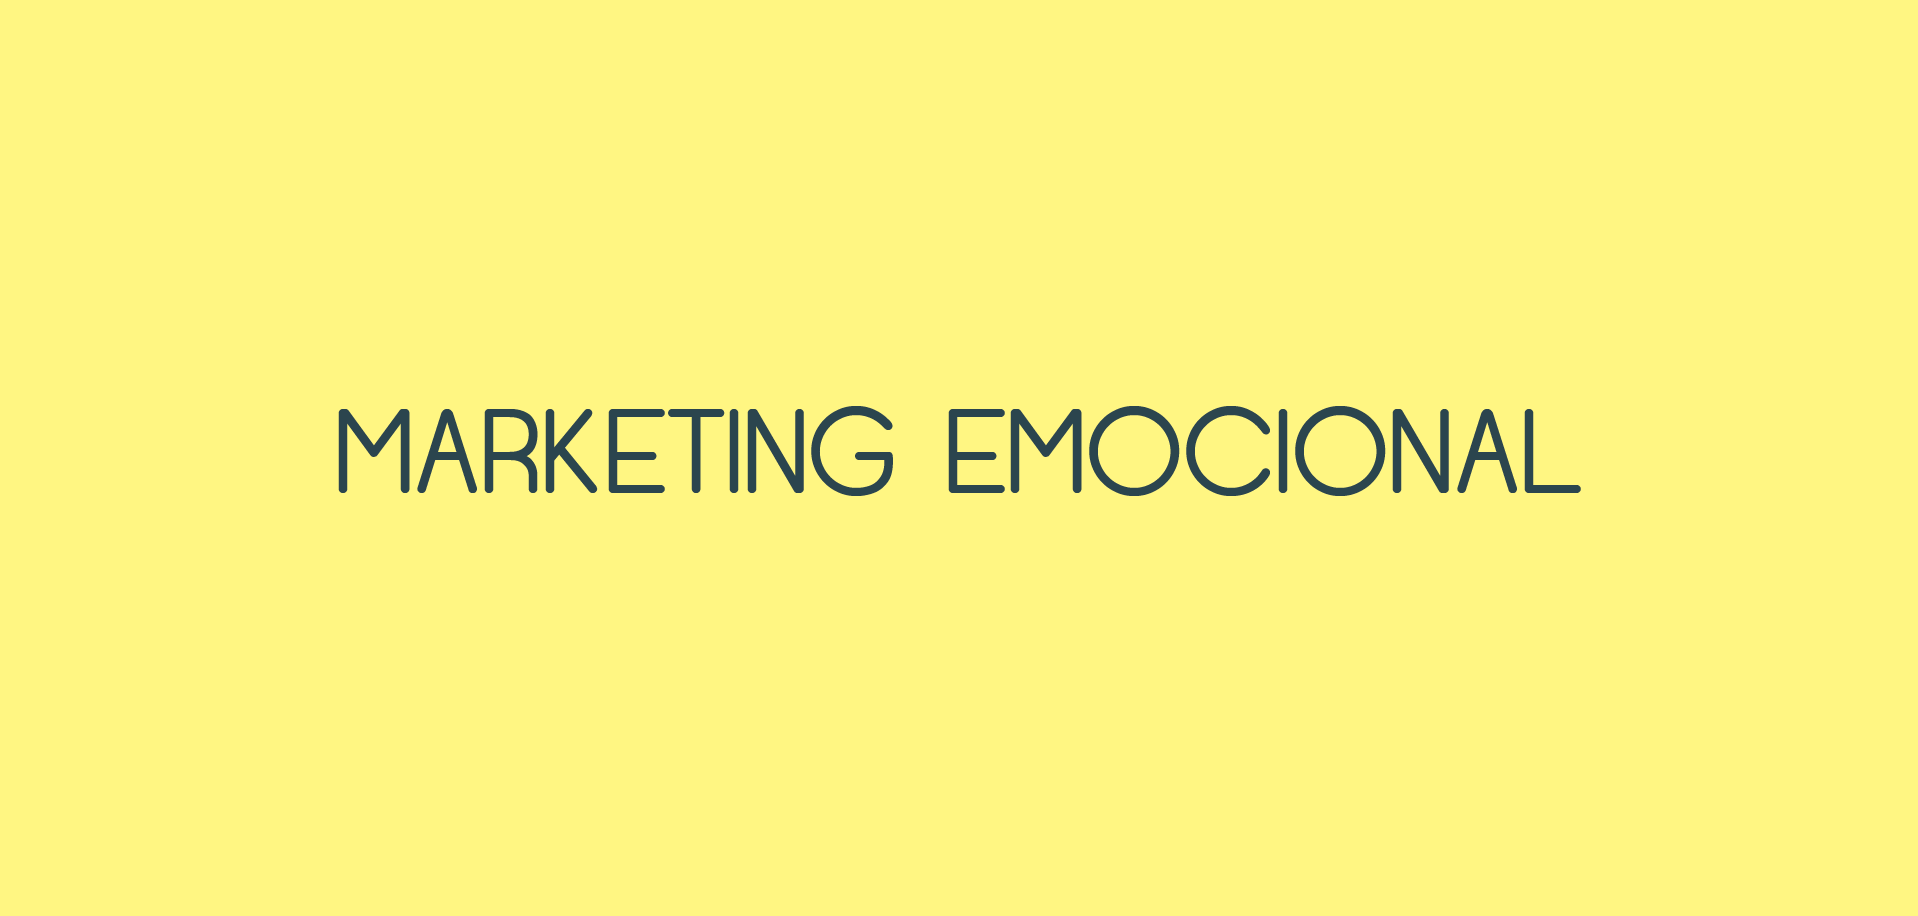 Marketing Emocional, Tendencias Marketing Online 2017